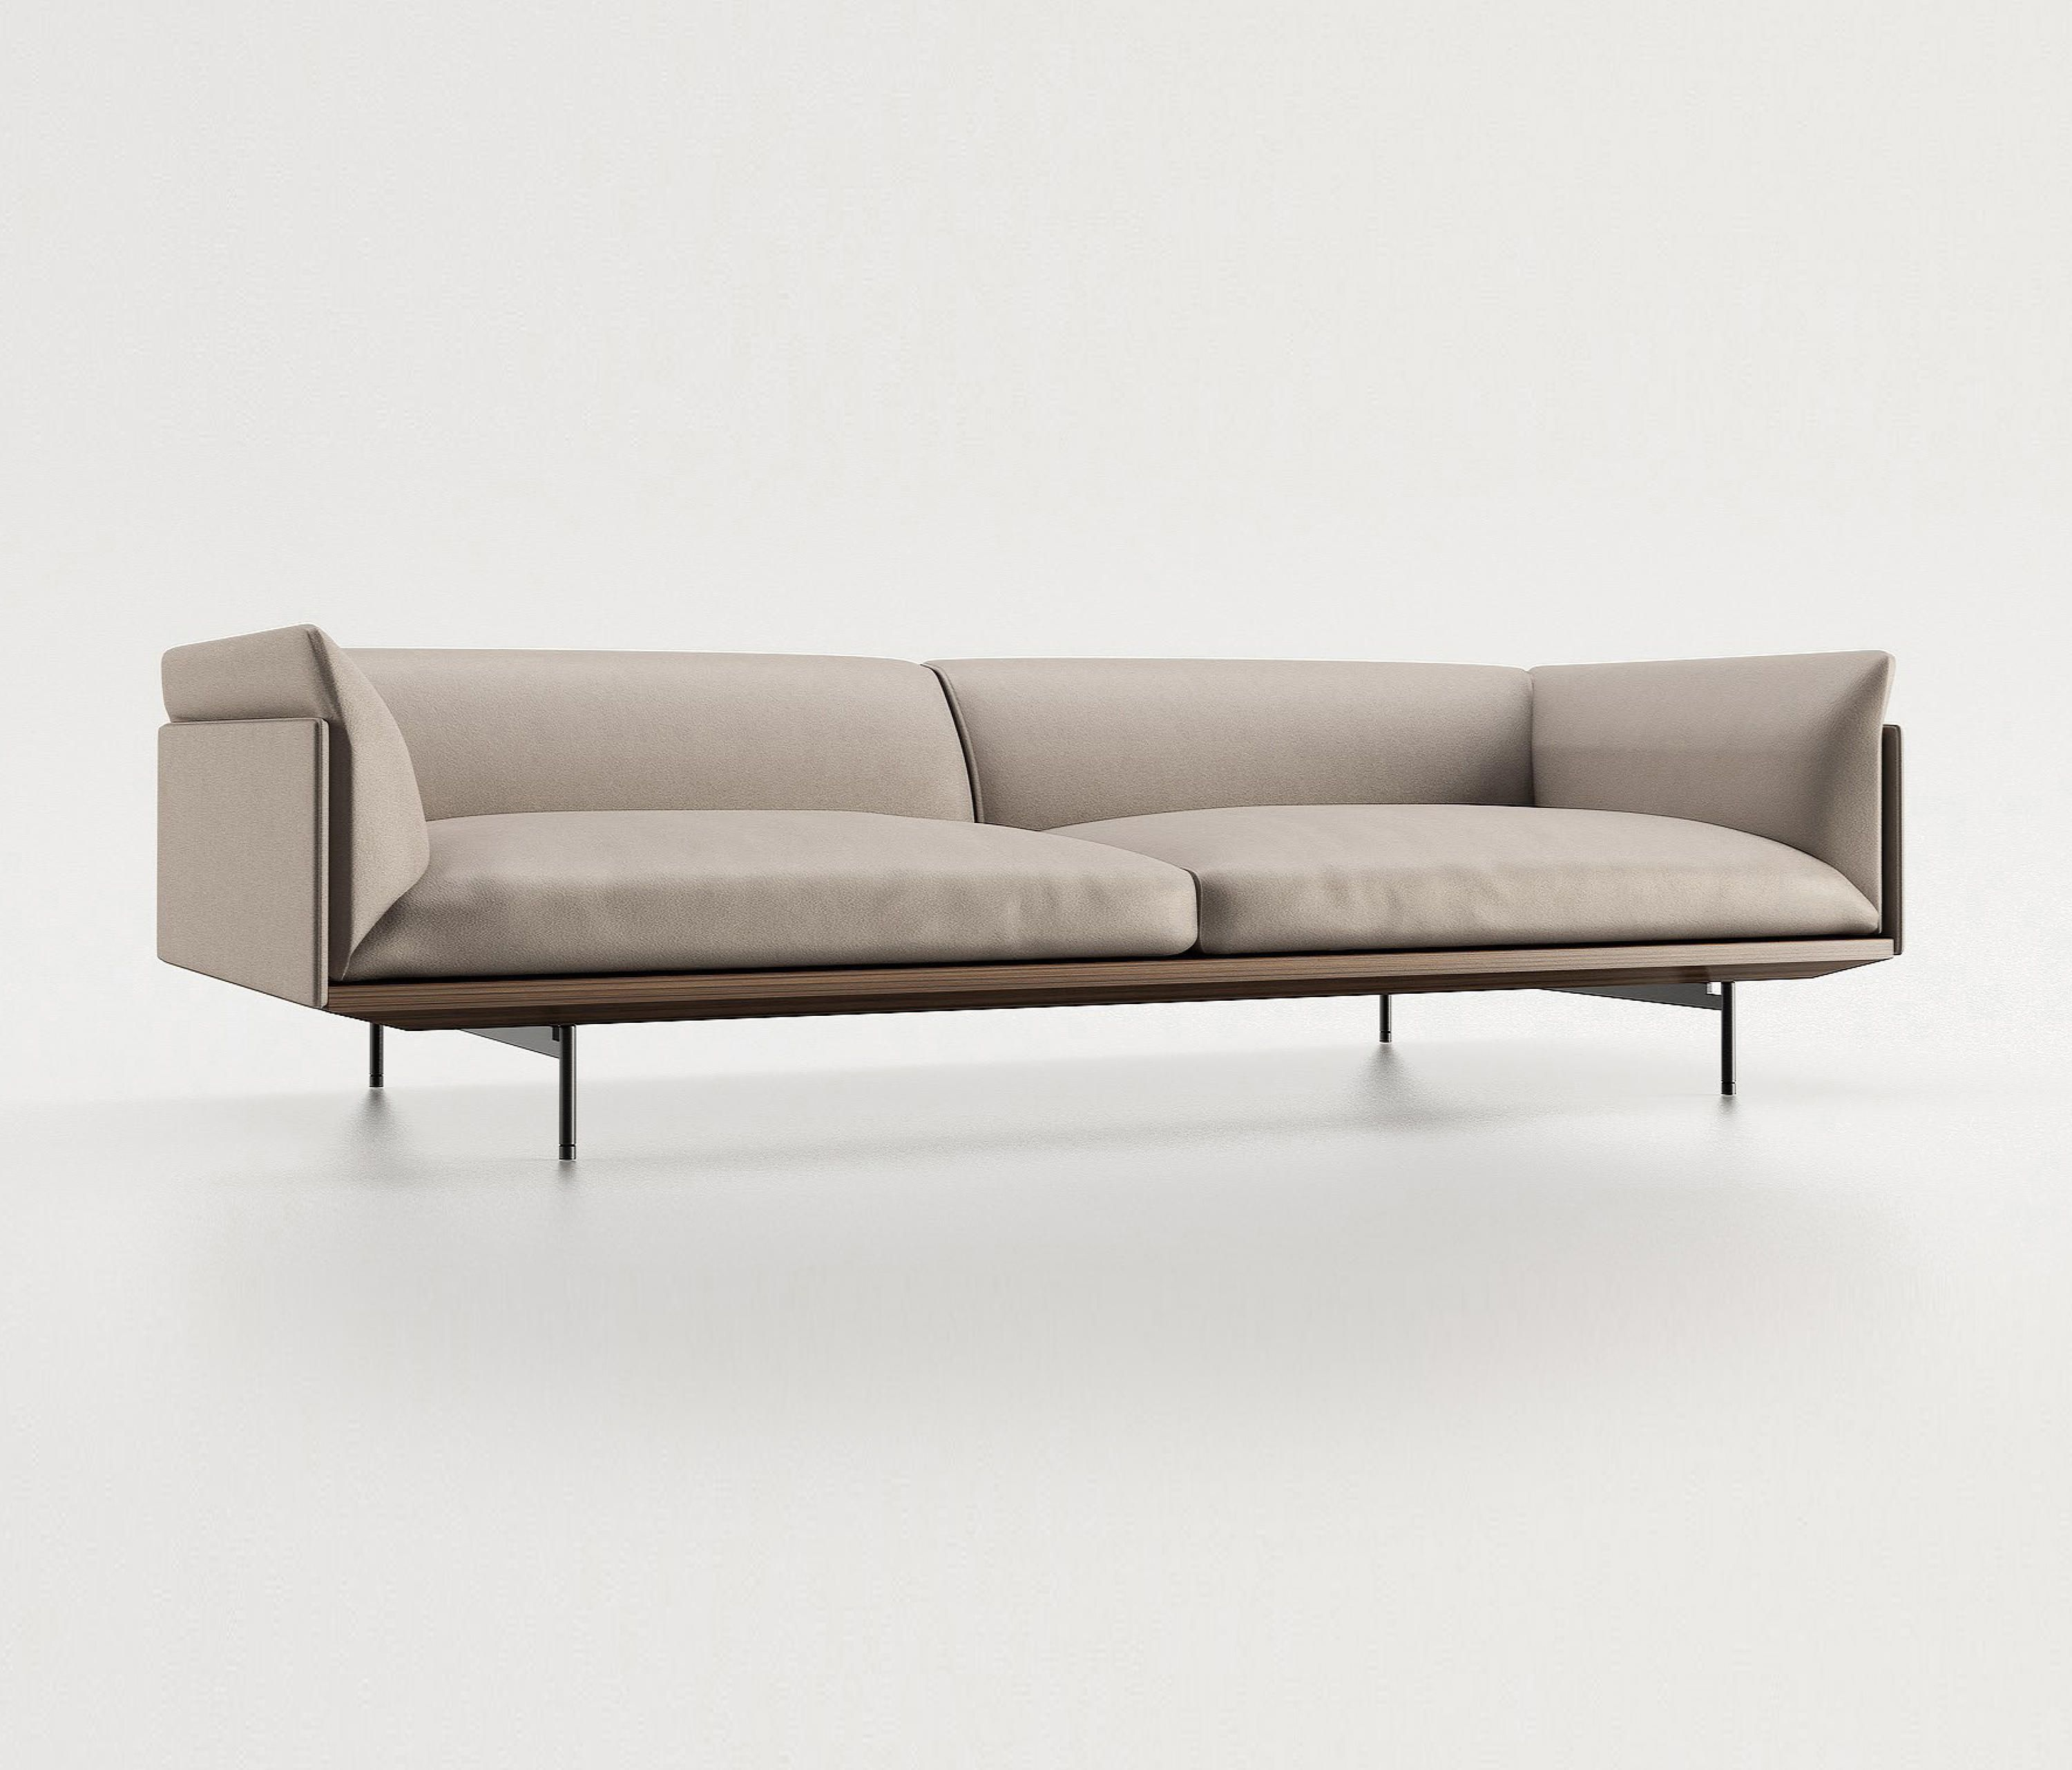 Corio by ENNE Lounge sofas Modern Sofa Pinterest